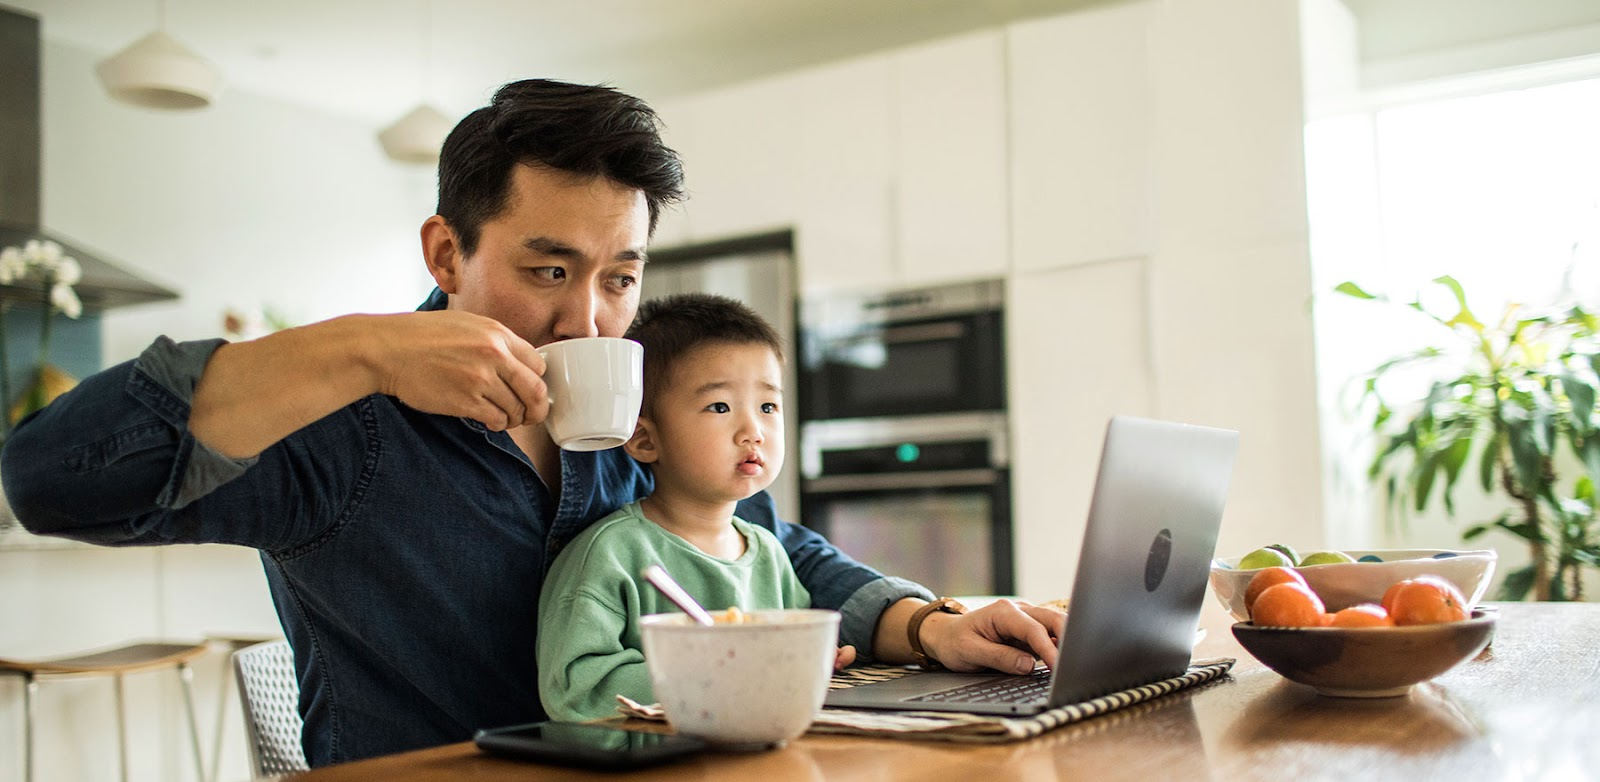 Working from home is here to stay while its hybrid model is becoming more  popular, says experts - Thai Enquirer